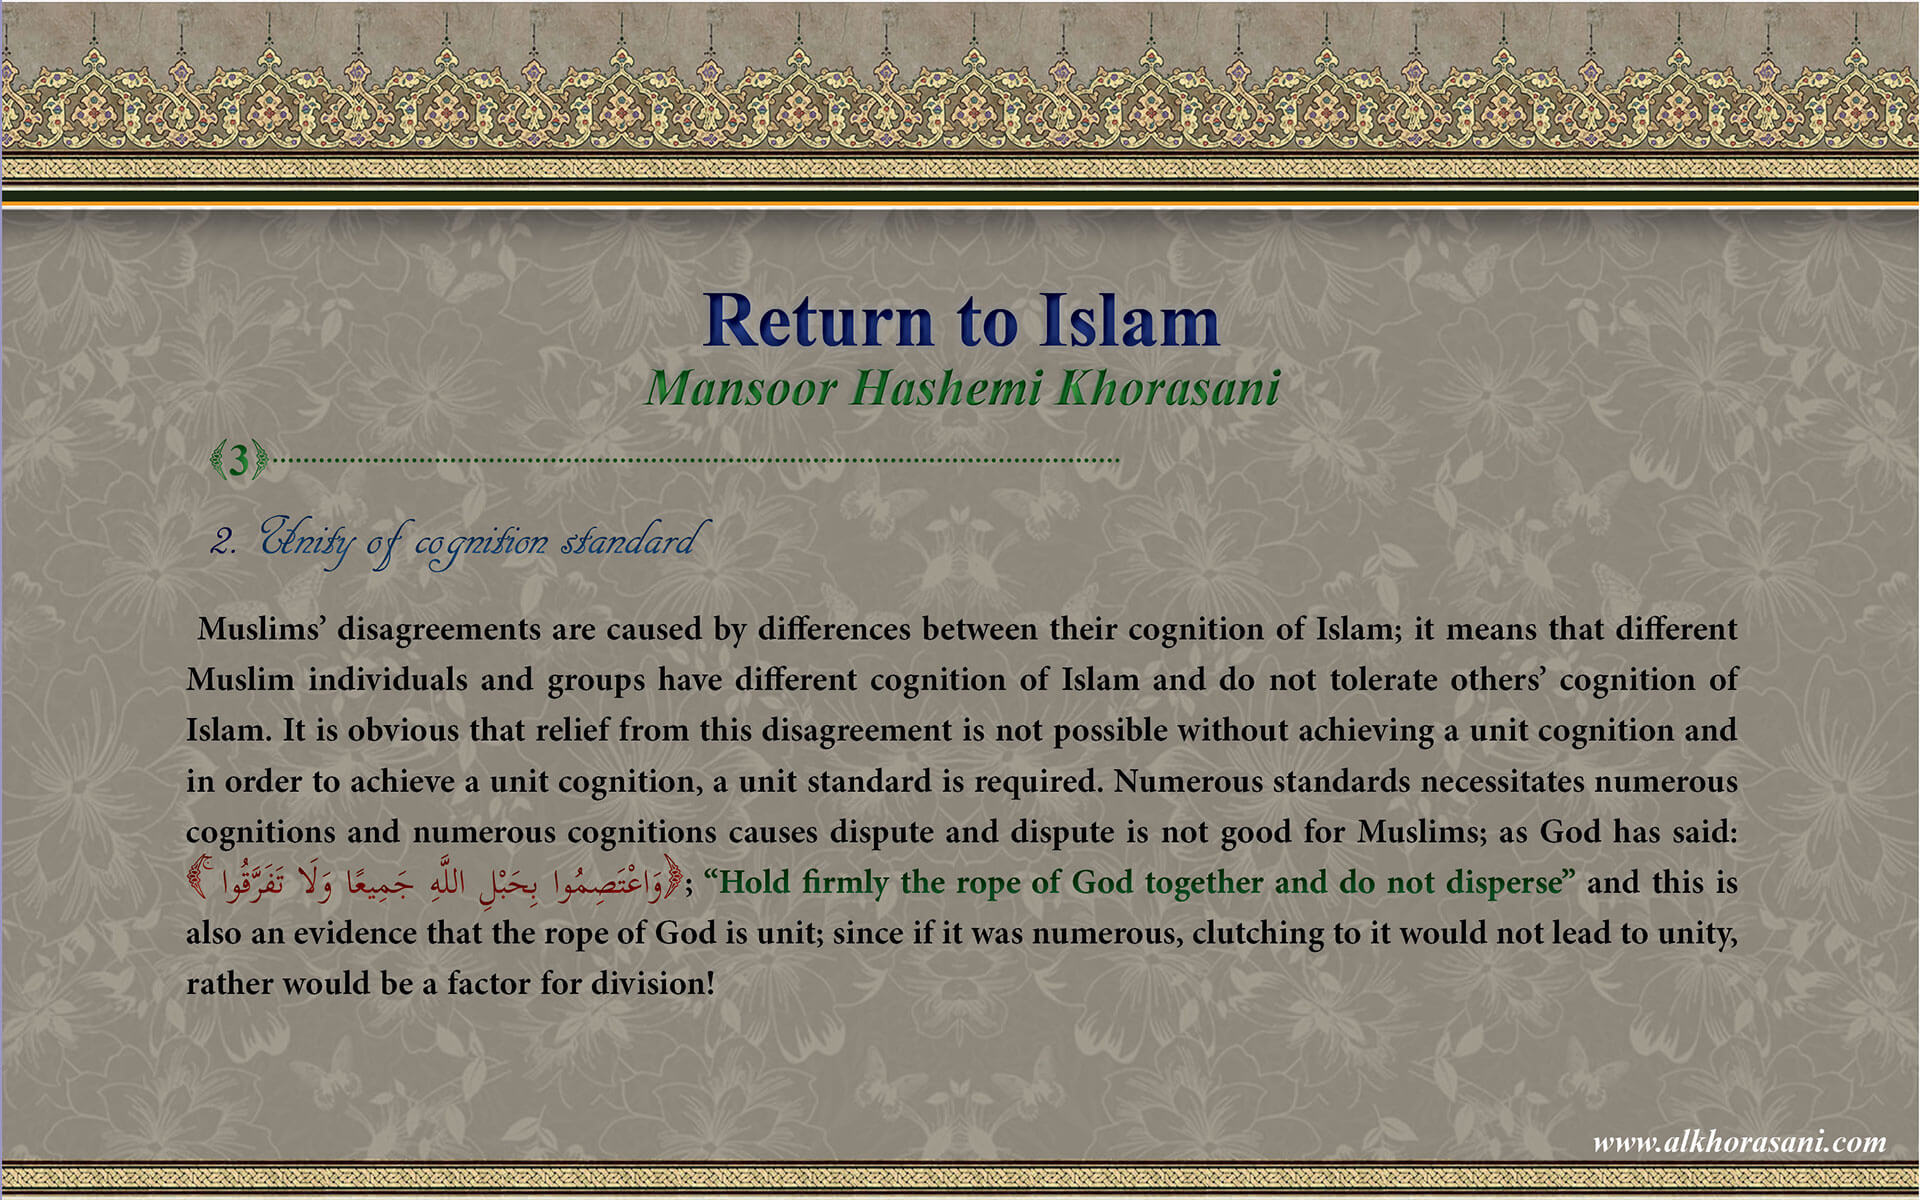 Unity of cognition standard; Return to Islam